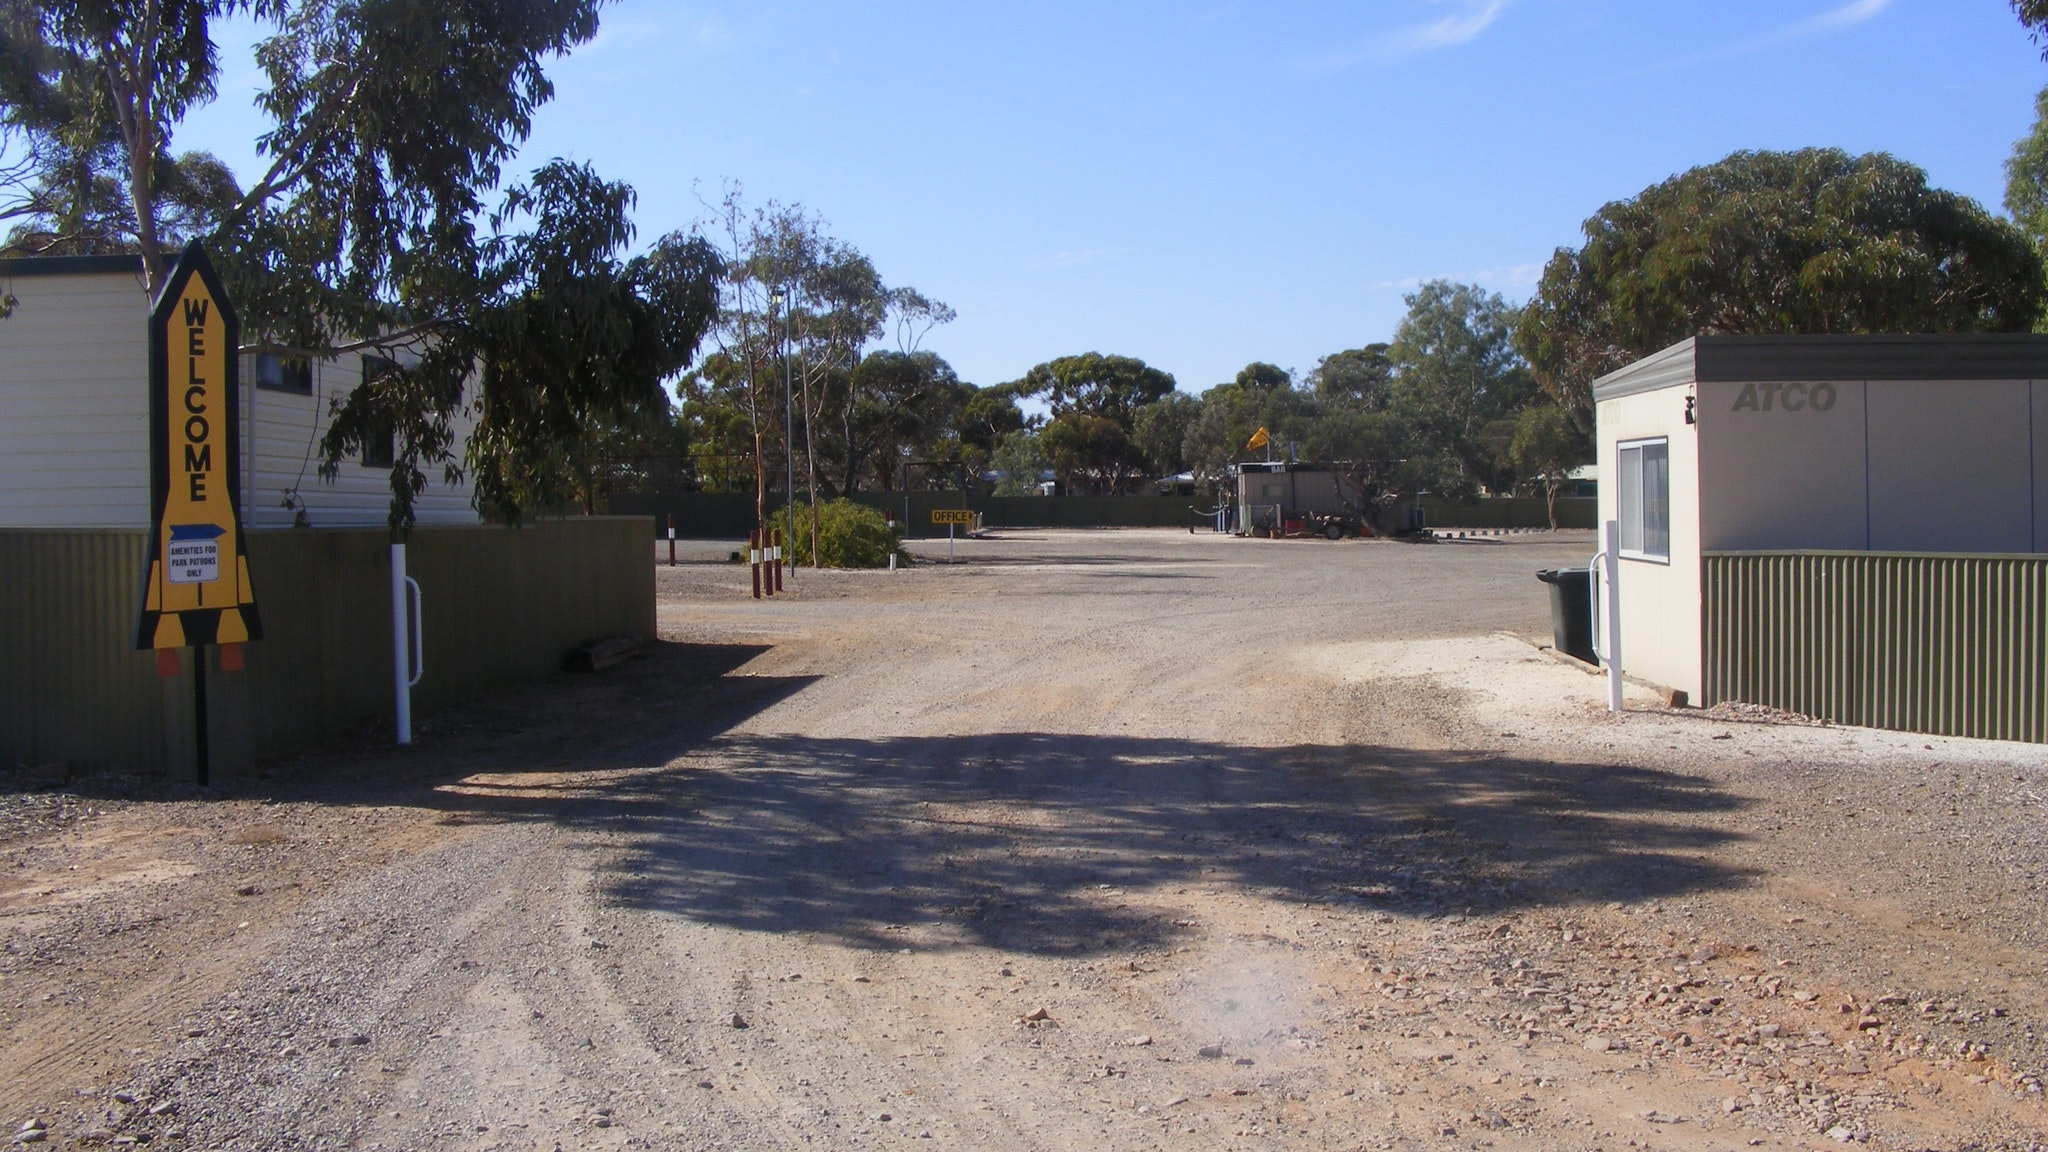 Woomera Traveller's Village and Caravan Park